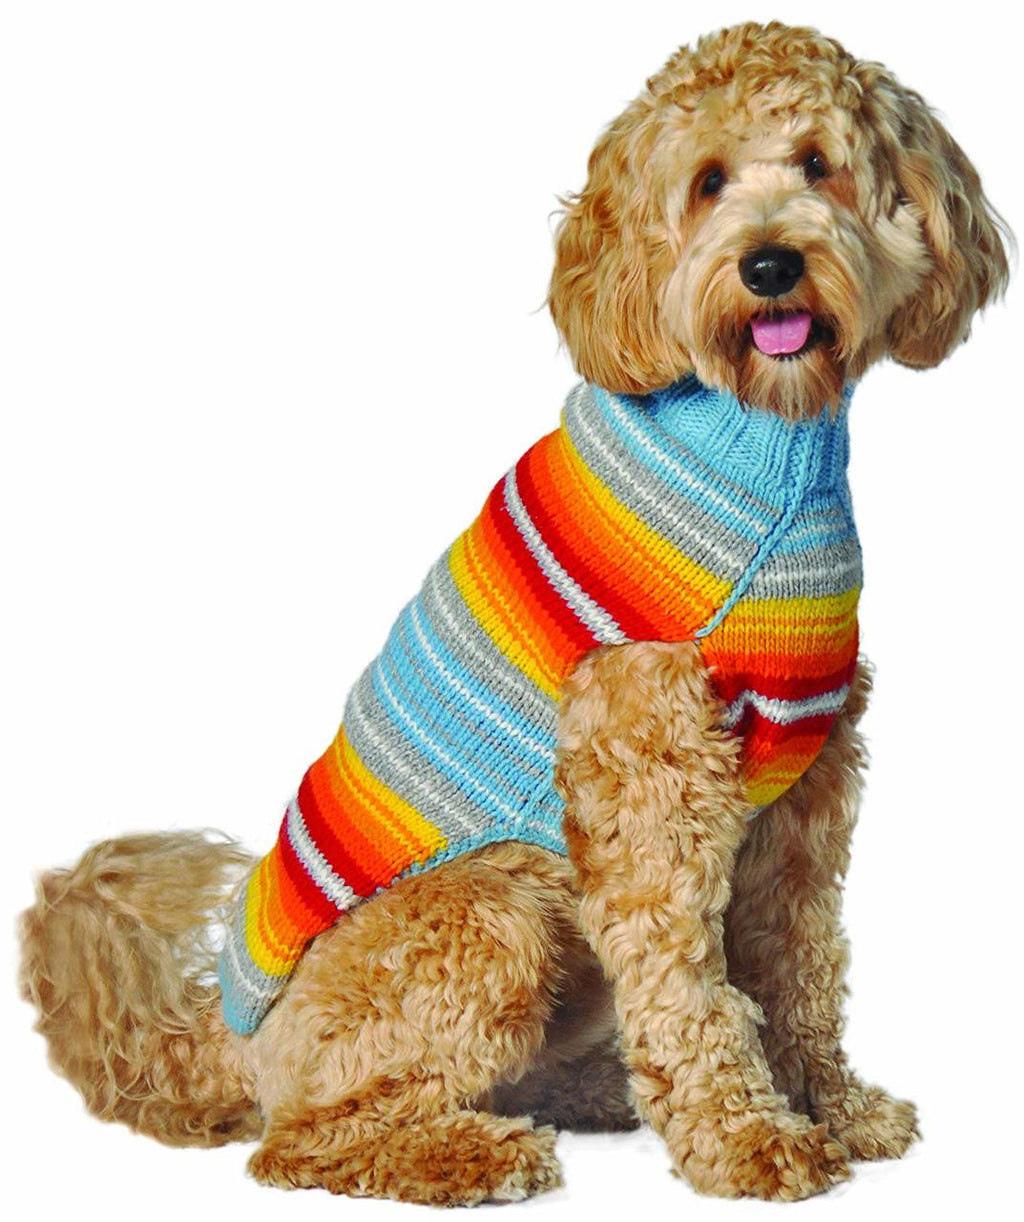 TURQ SERAPE DOG SWEATER